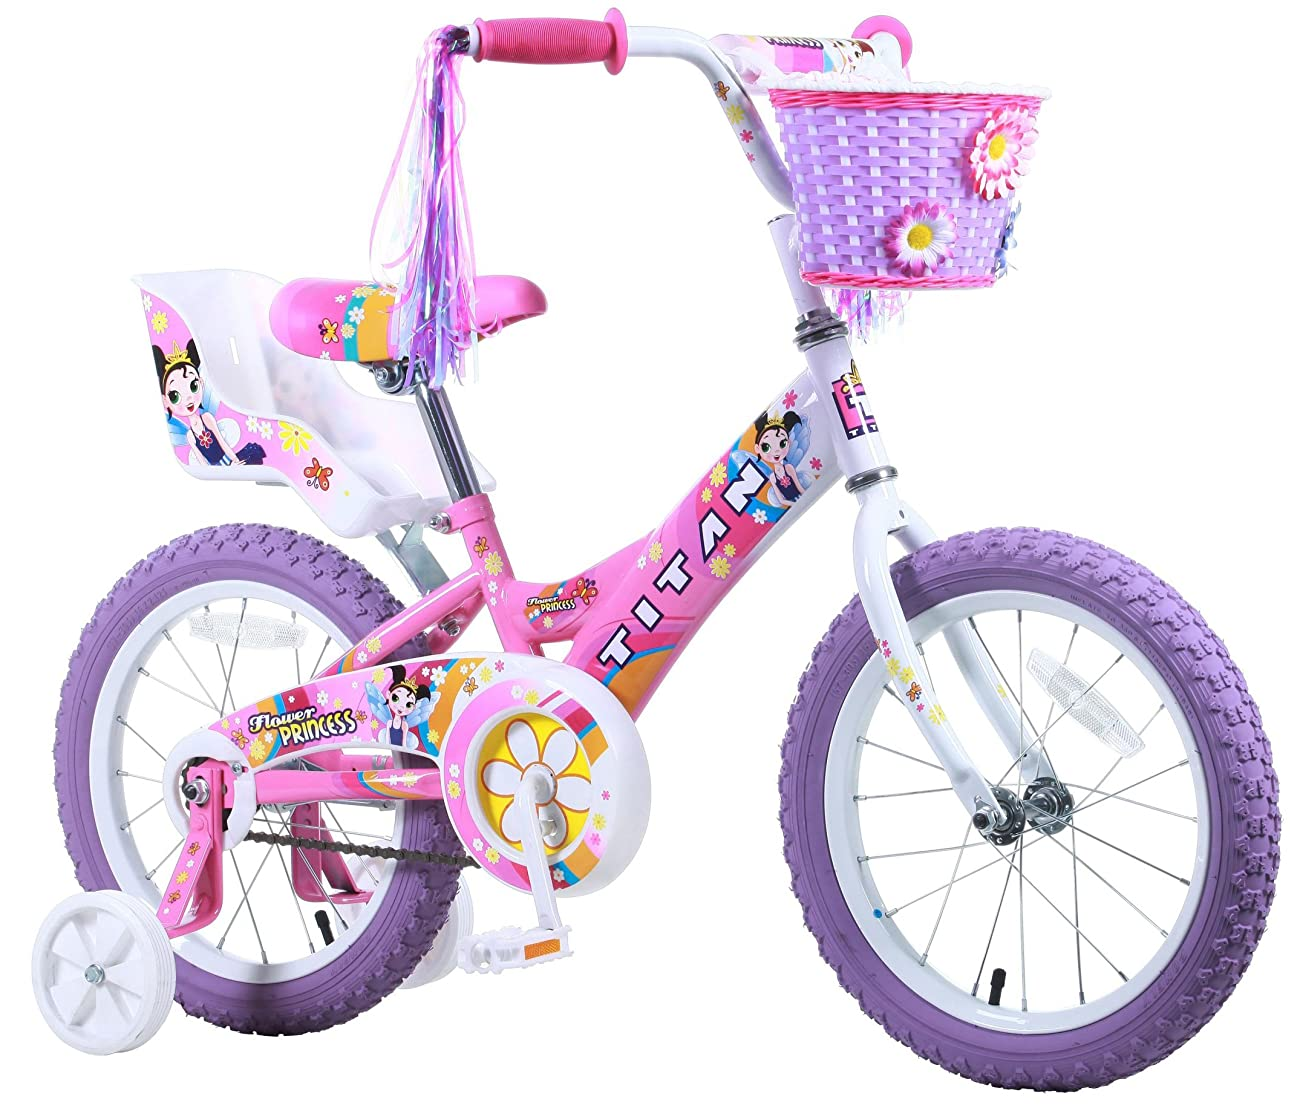 Titan Girl's Flower Princess BMX Bike, Pink, 16-Inch 0